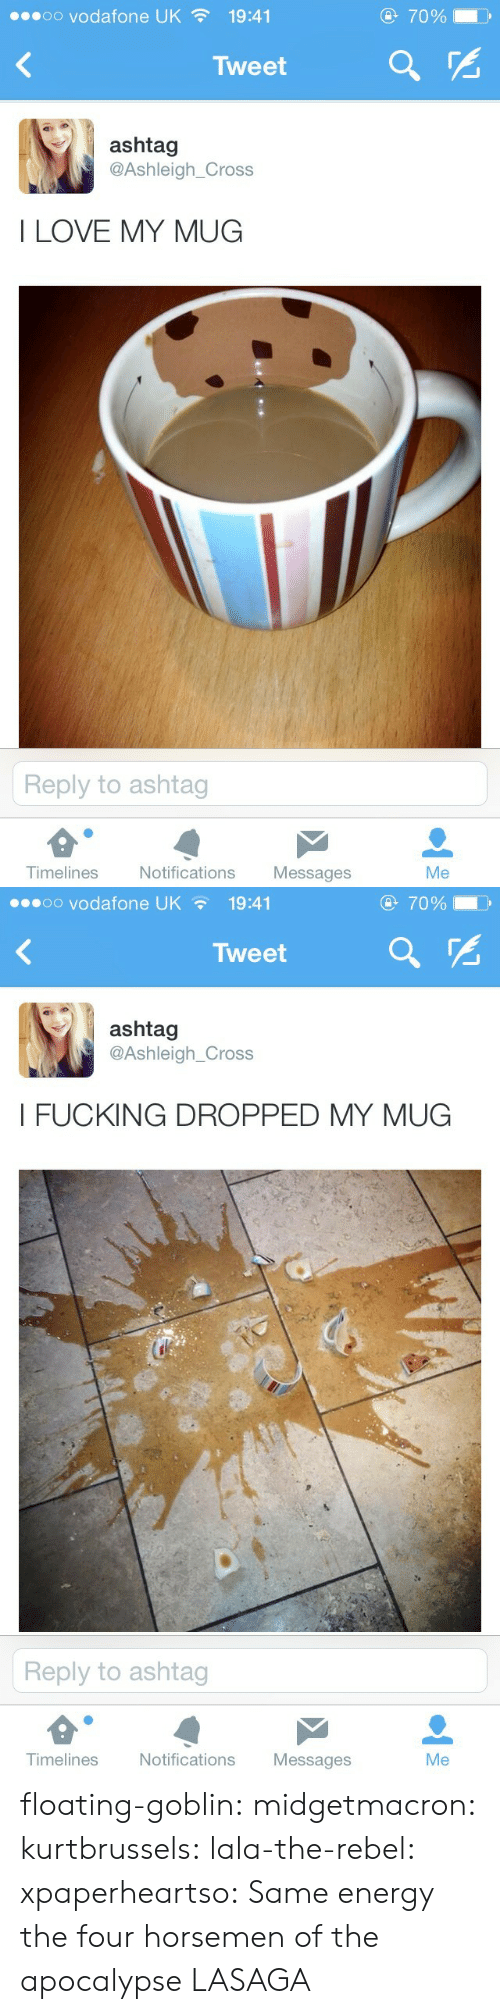 Energy, Love, and Tumblr: oo vodafone UK  70%  19:41  Tweet  ashtag  @Ashleigh_Cross  I LOVE MY MUG  Reply to ashtag  Timelines  Notifications  Messages  Me   oo vodafone UK  70%  19:41  Tweet  ashtag  @Ashleigh_Cross  I FUCKING DROPPED MY MUG  Reply to ashtag  Timelines  Notifications  Messages  Me floating-goblin: midgetmacron:  kurtbrussels:  lala-the-rebel:  xpaperheartso:  Same energy         the four horsemen of the apocalypse   LASAGA